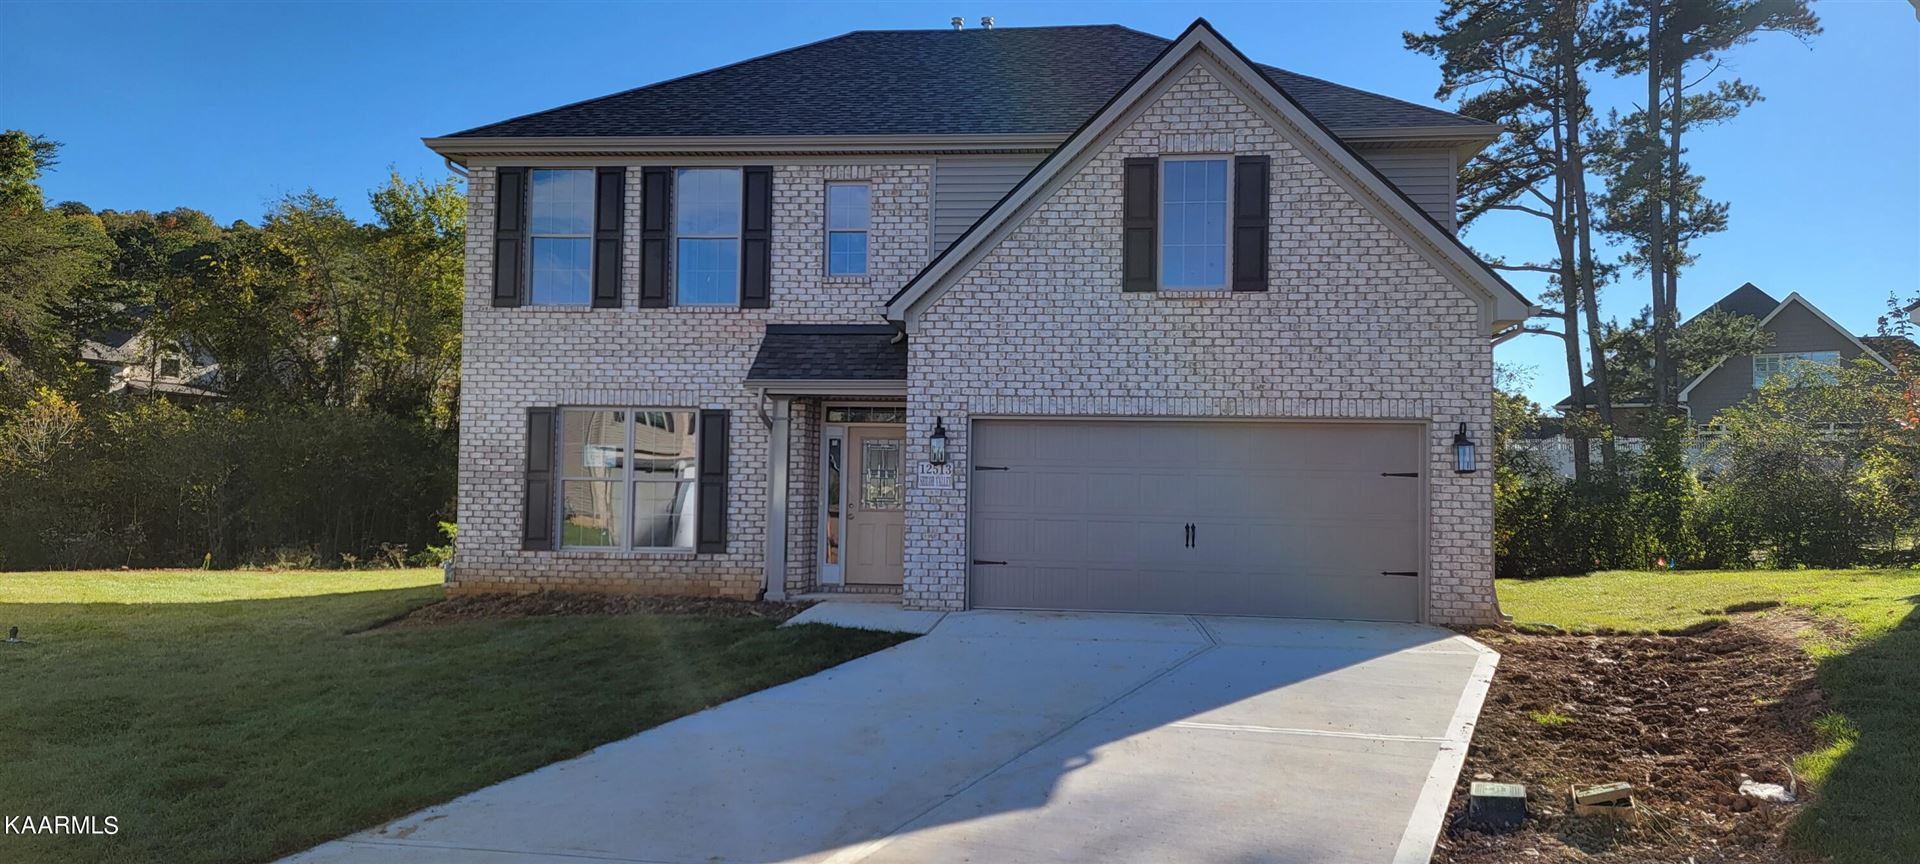 Photo of 12513 Shiloh Valley Lane, Knoxville, TN 37922 (MLS # 1171746)